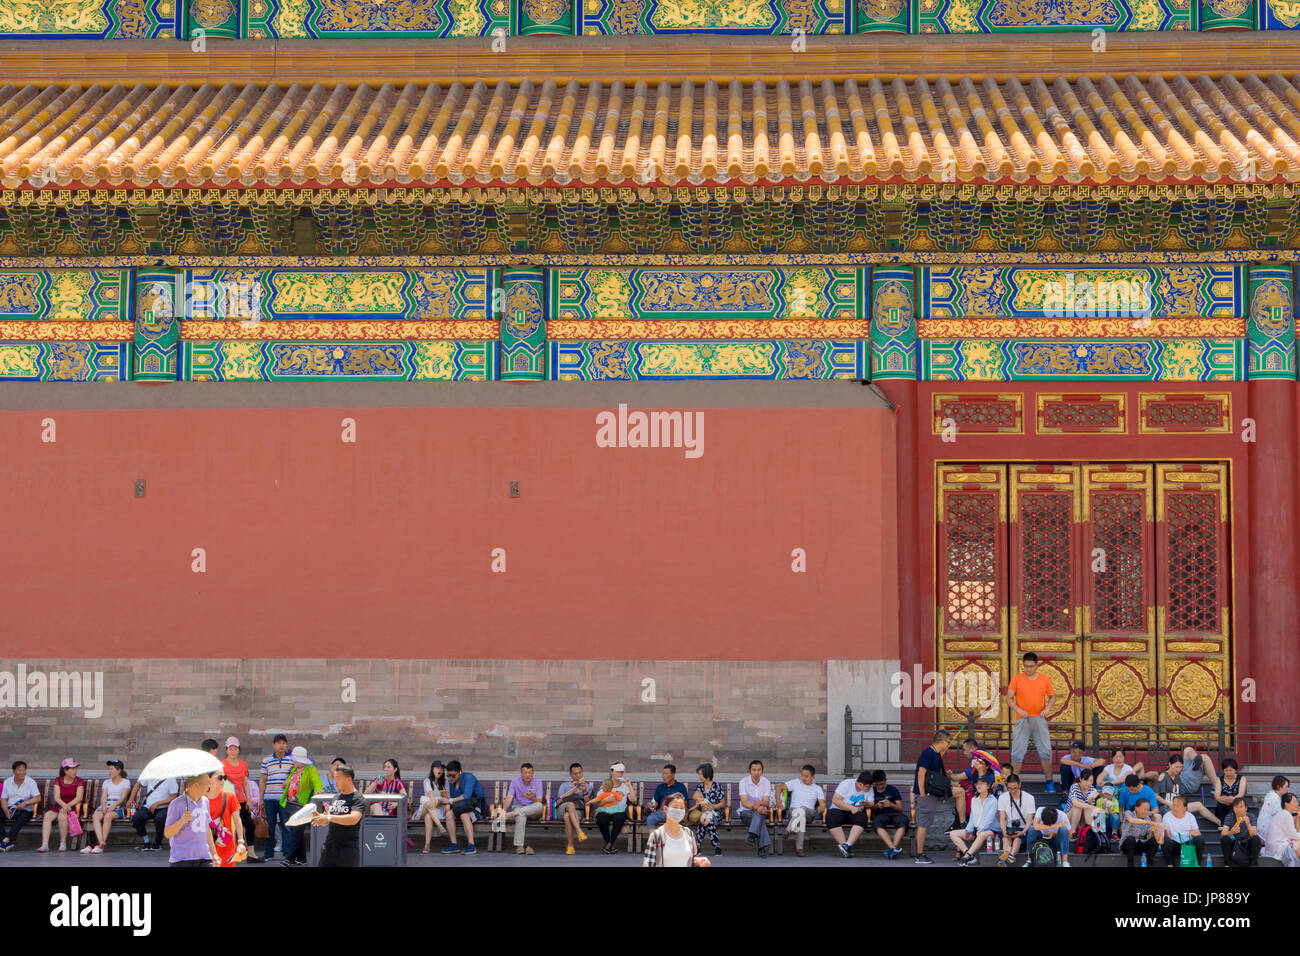 Chinese tourists sitting and taking a break from visiting Forbidden City - some eating some on their mobile phones and some talking - Stock Image